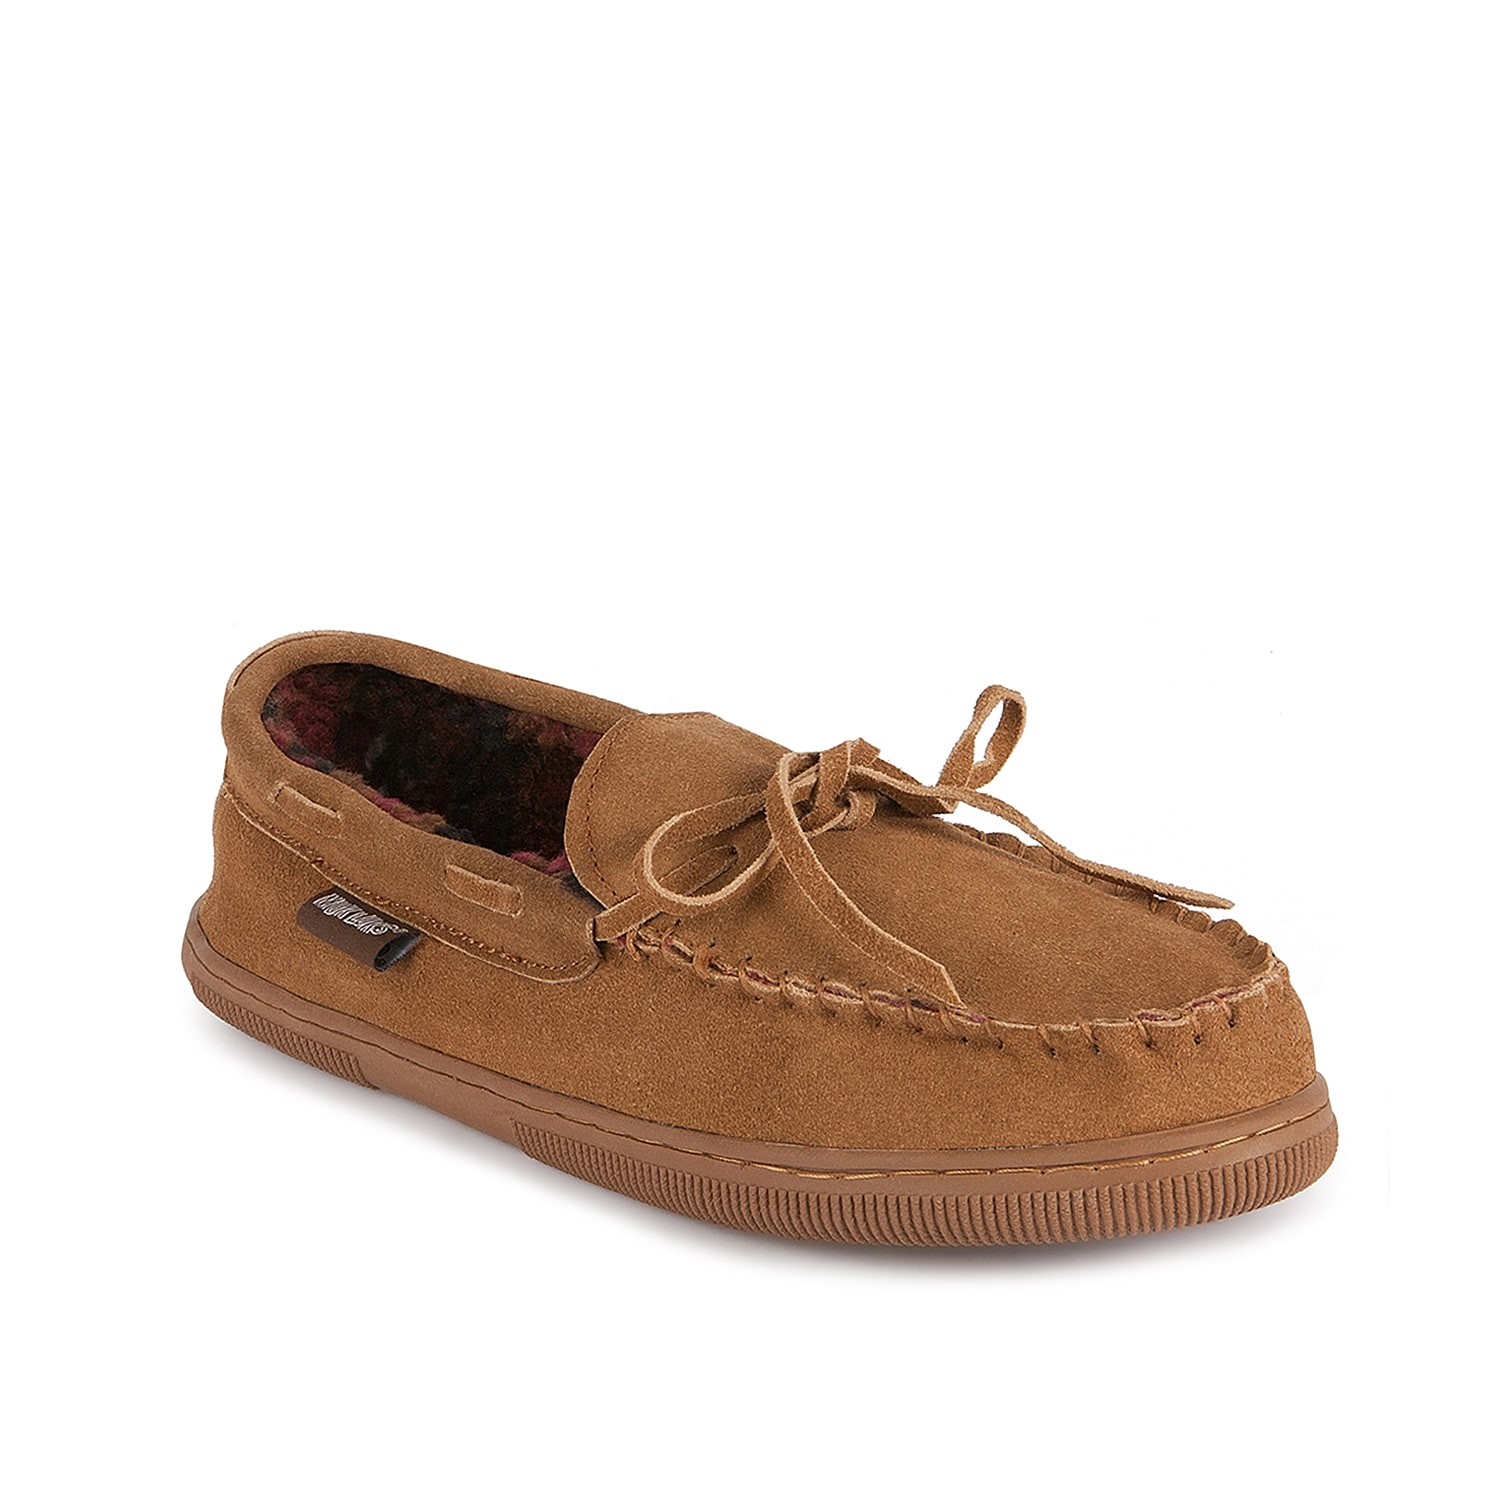 For a look and feel that will keep you feeling and looking good, Muk Luks has created the Paul moccasin slipper to keep you on your toes this season.